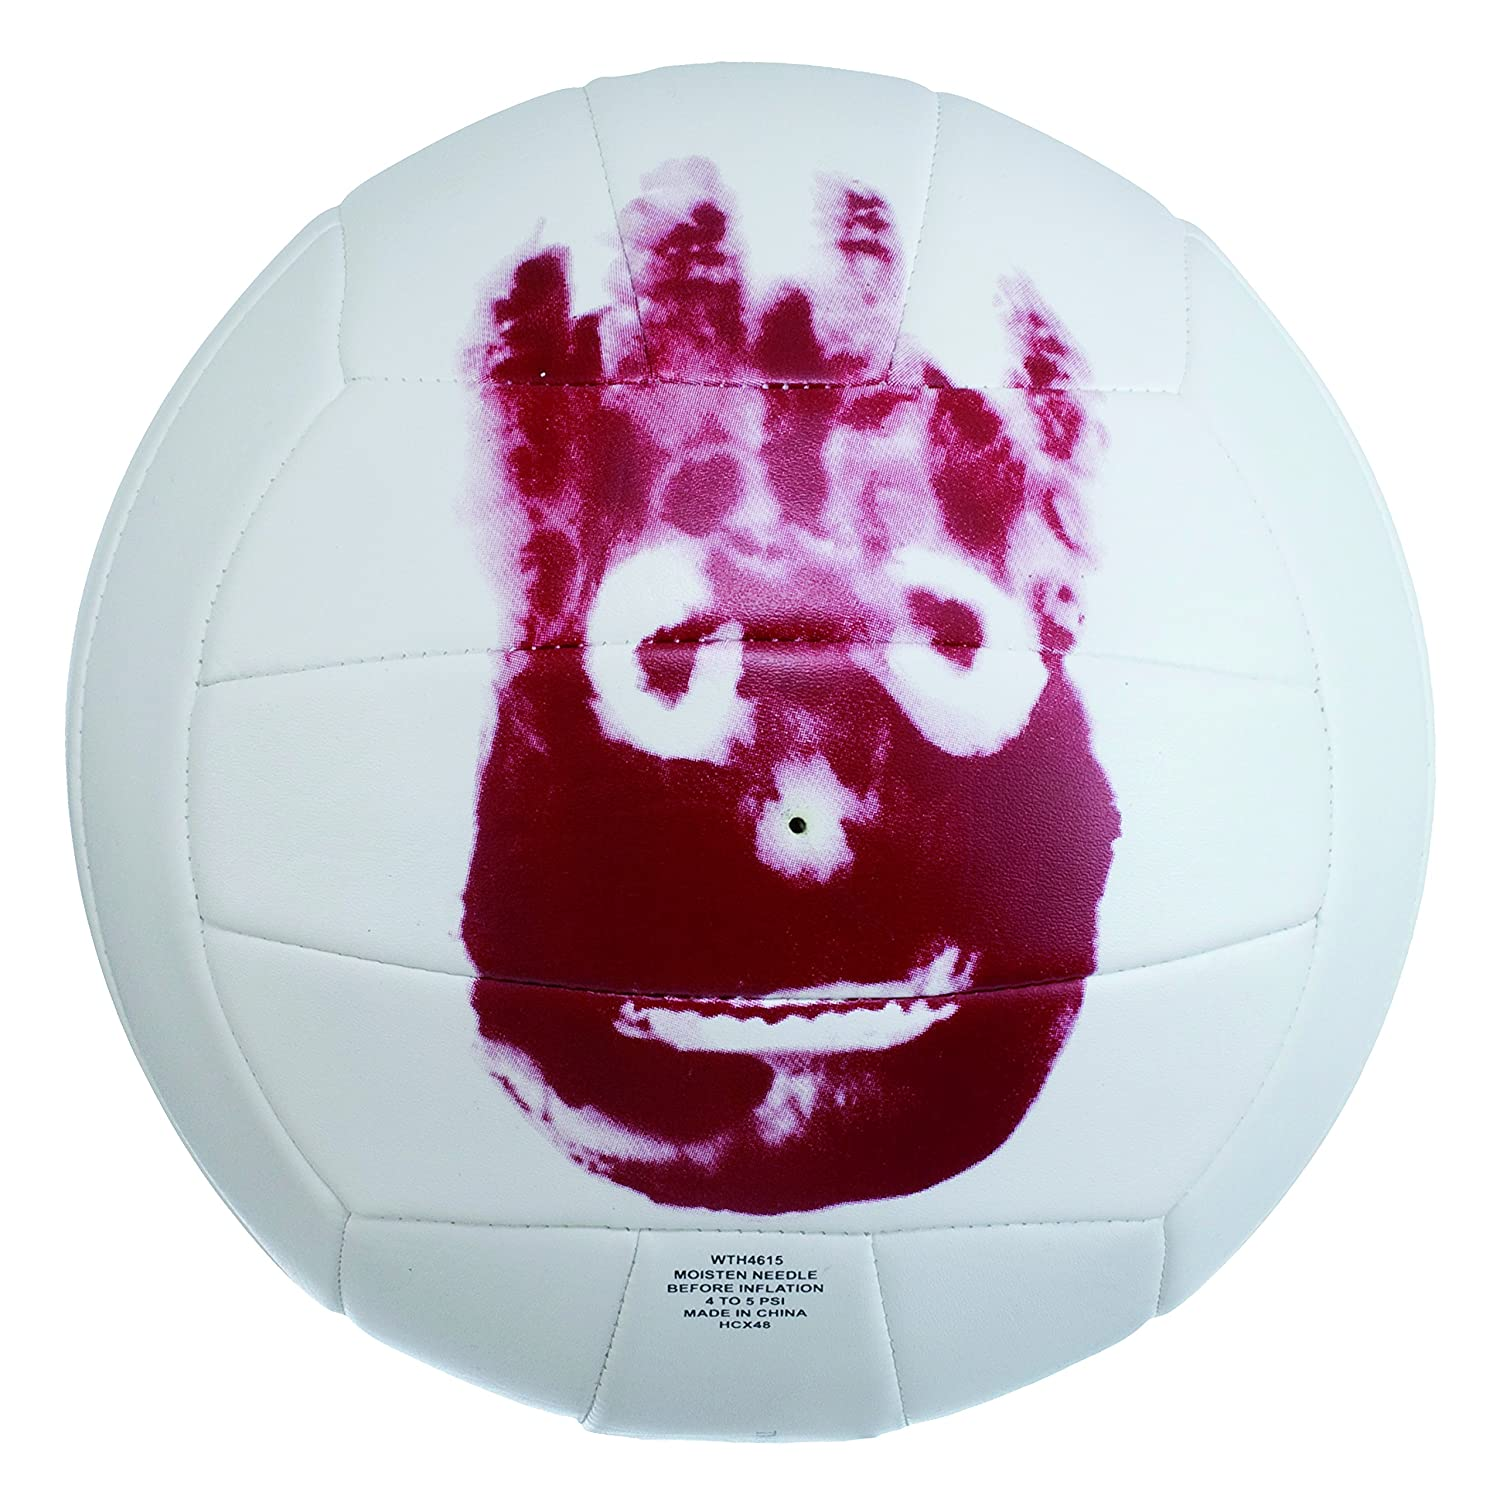 Wilson Beachvolleyball Wilson Ballon de Volleyball Extérieur Pour amateurs Blanc/Rouge